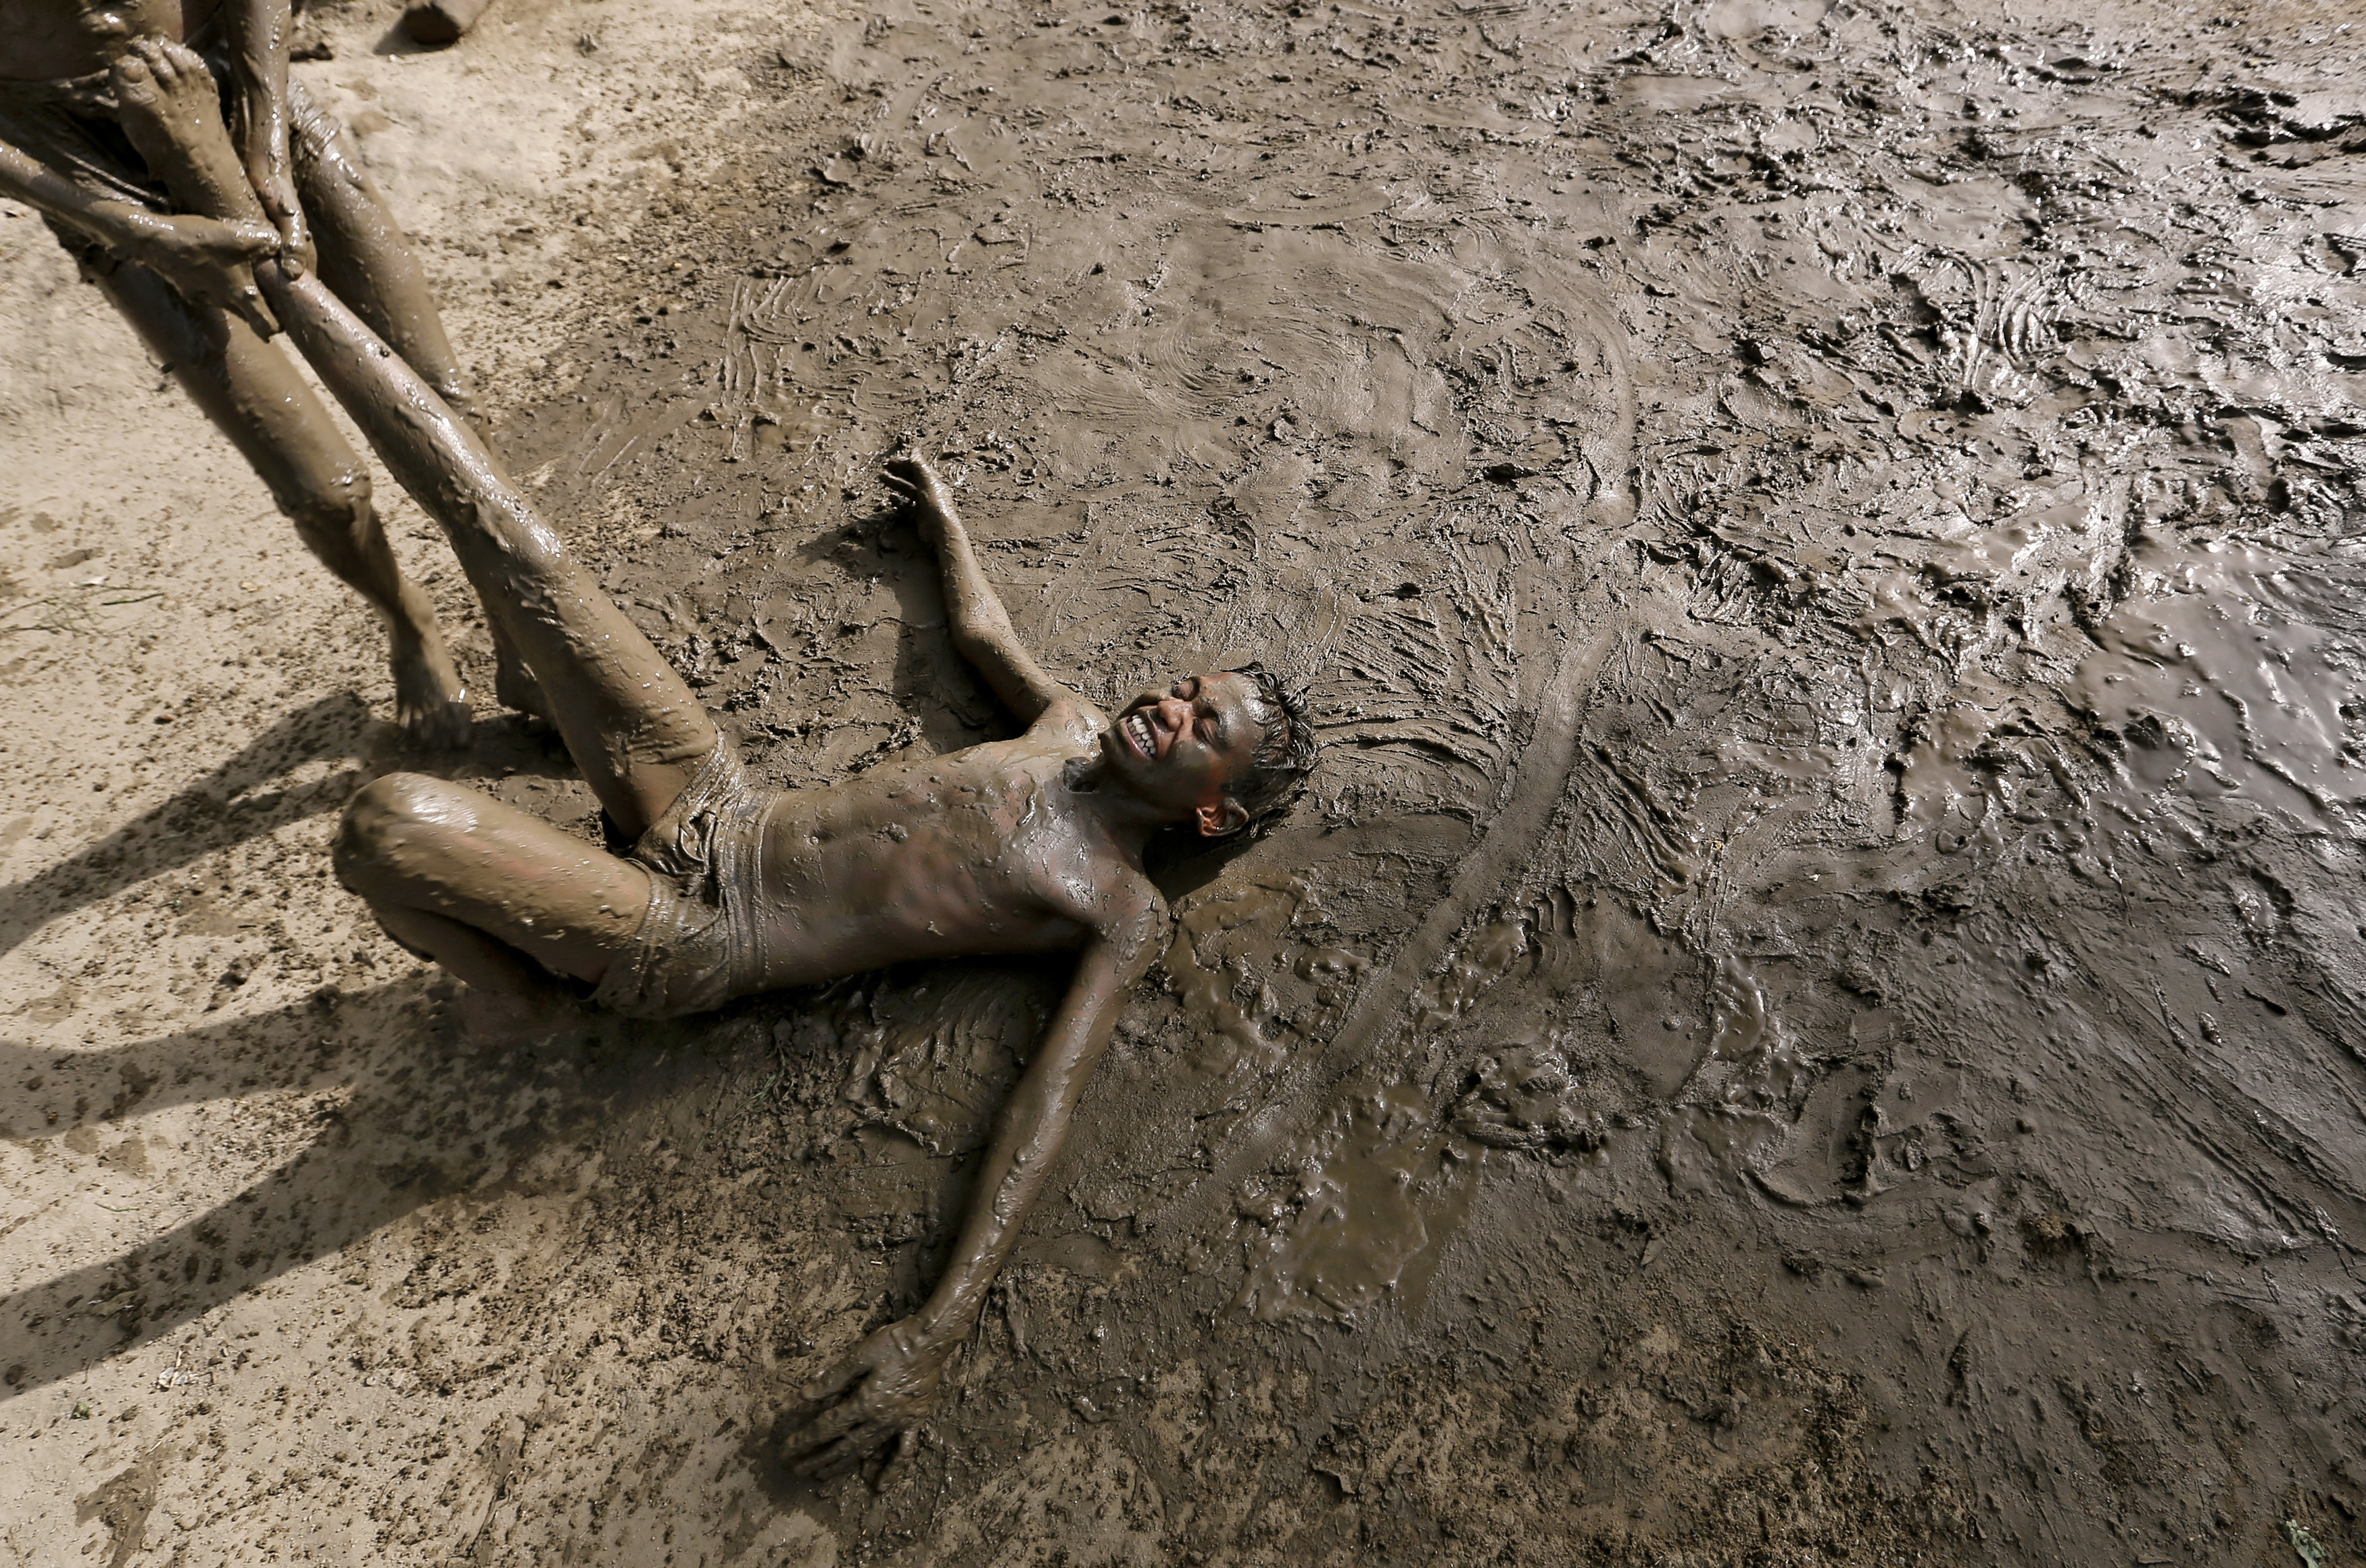 Children play in mud to cool off on a hot day in New Delhi, India